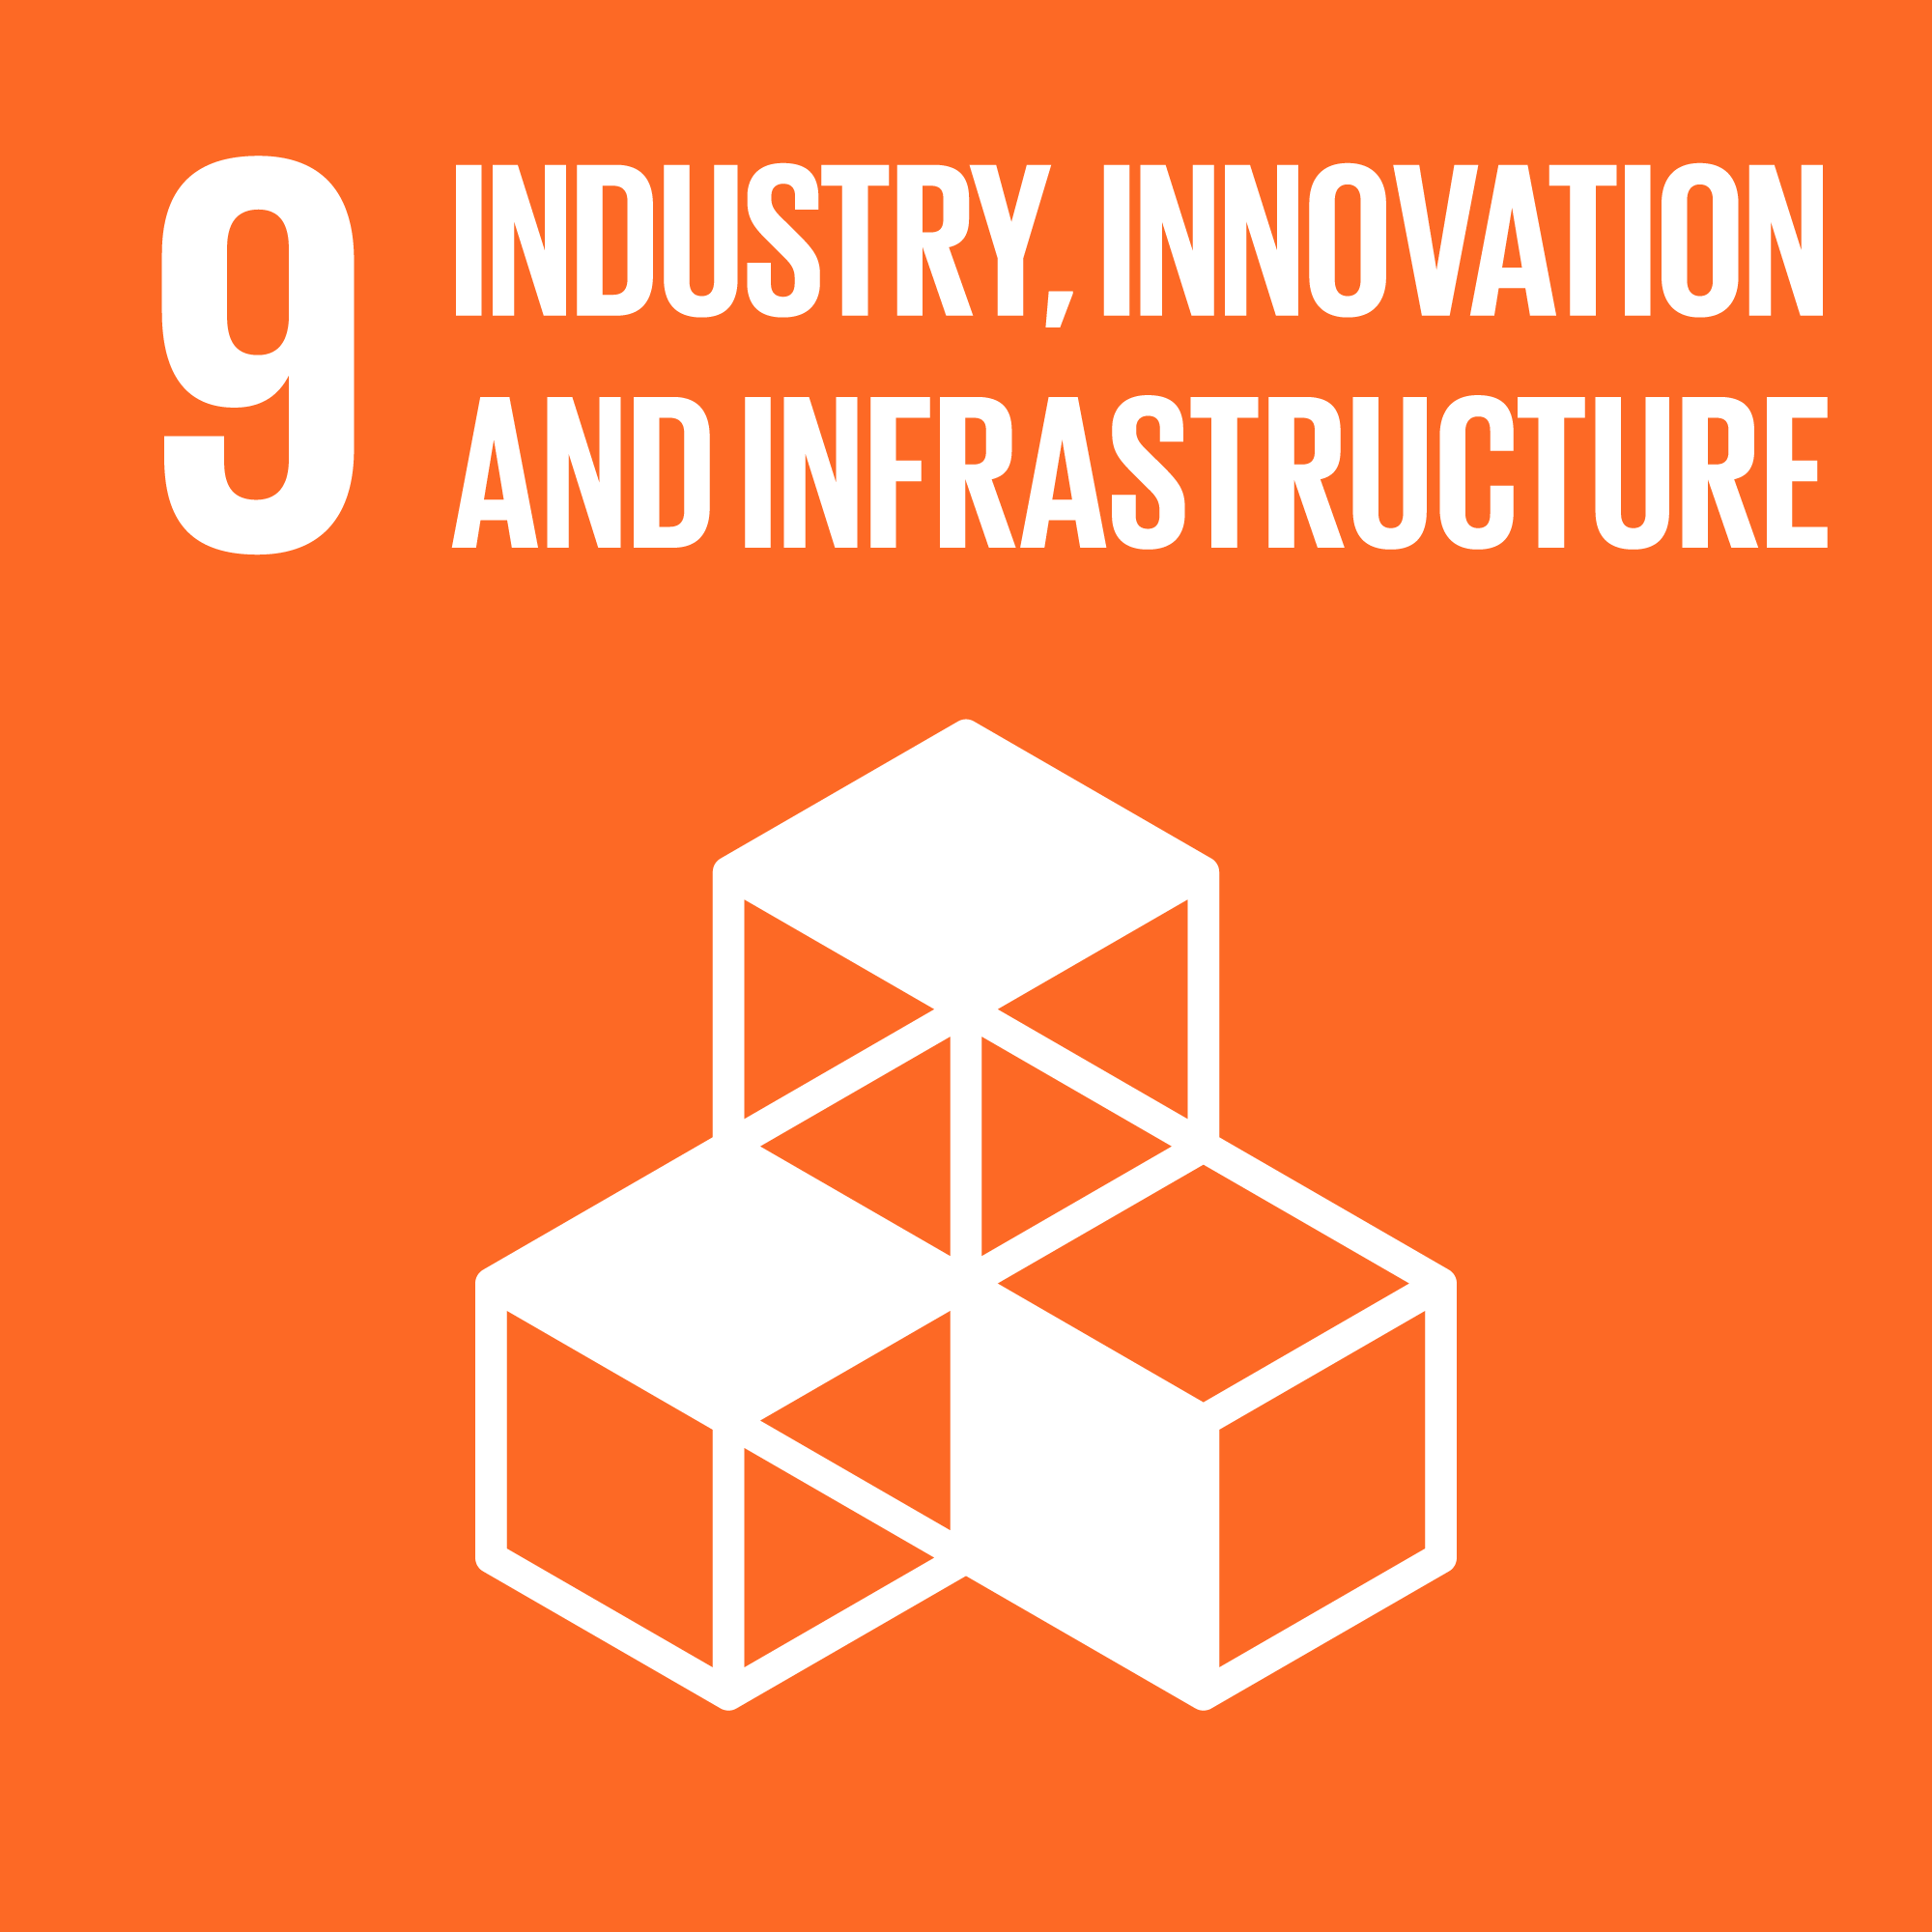 Icon for the global goals number 9, Industry, innovation and infrastructure